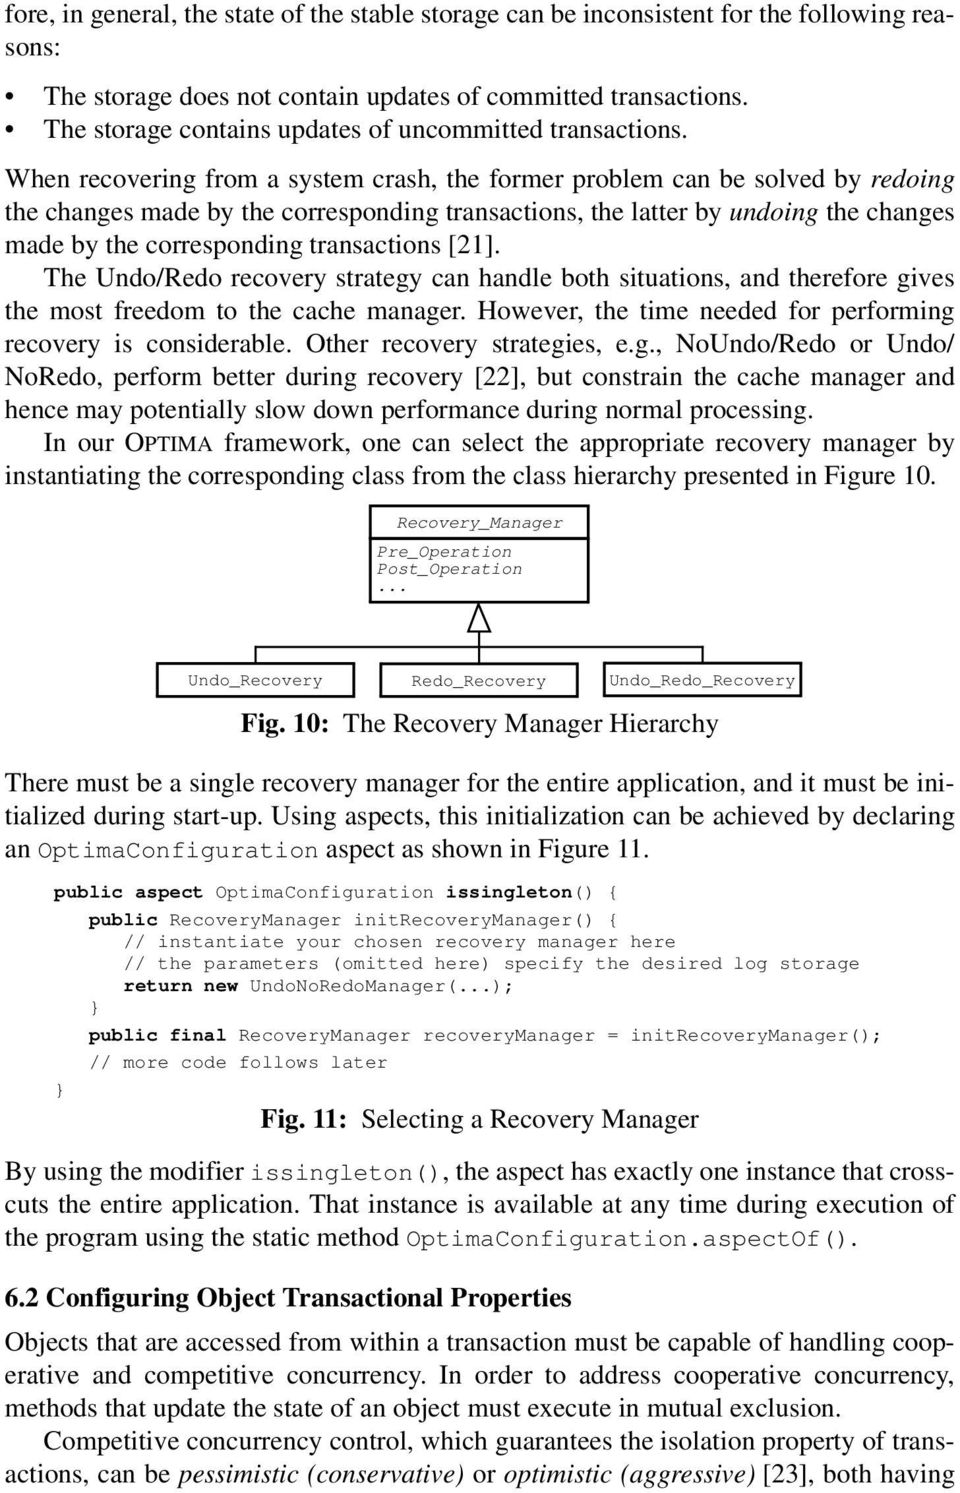 When recovering from a system crash, the former problem can be solved by redoing the changes made by the corresponding transactions, the latter by undoing the changes made by the corresponding